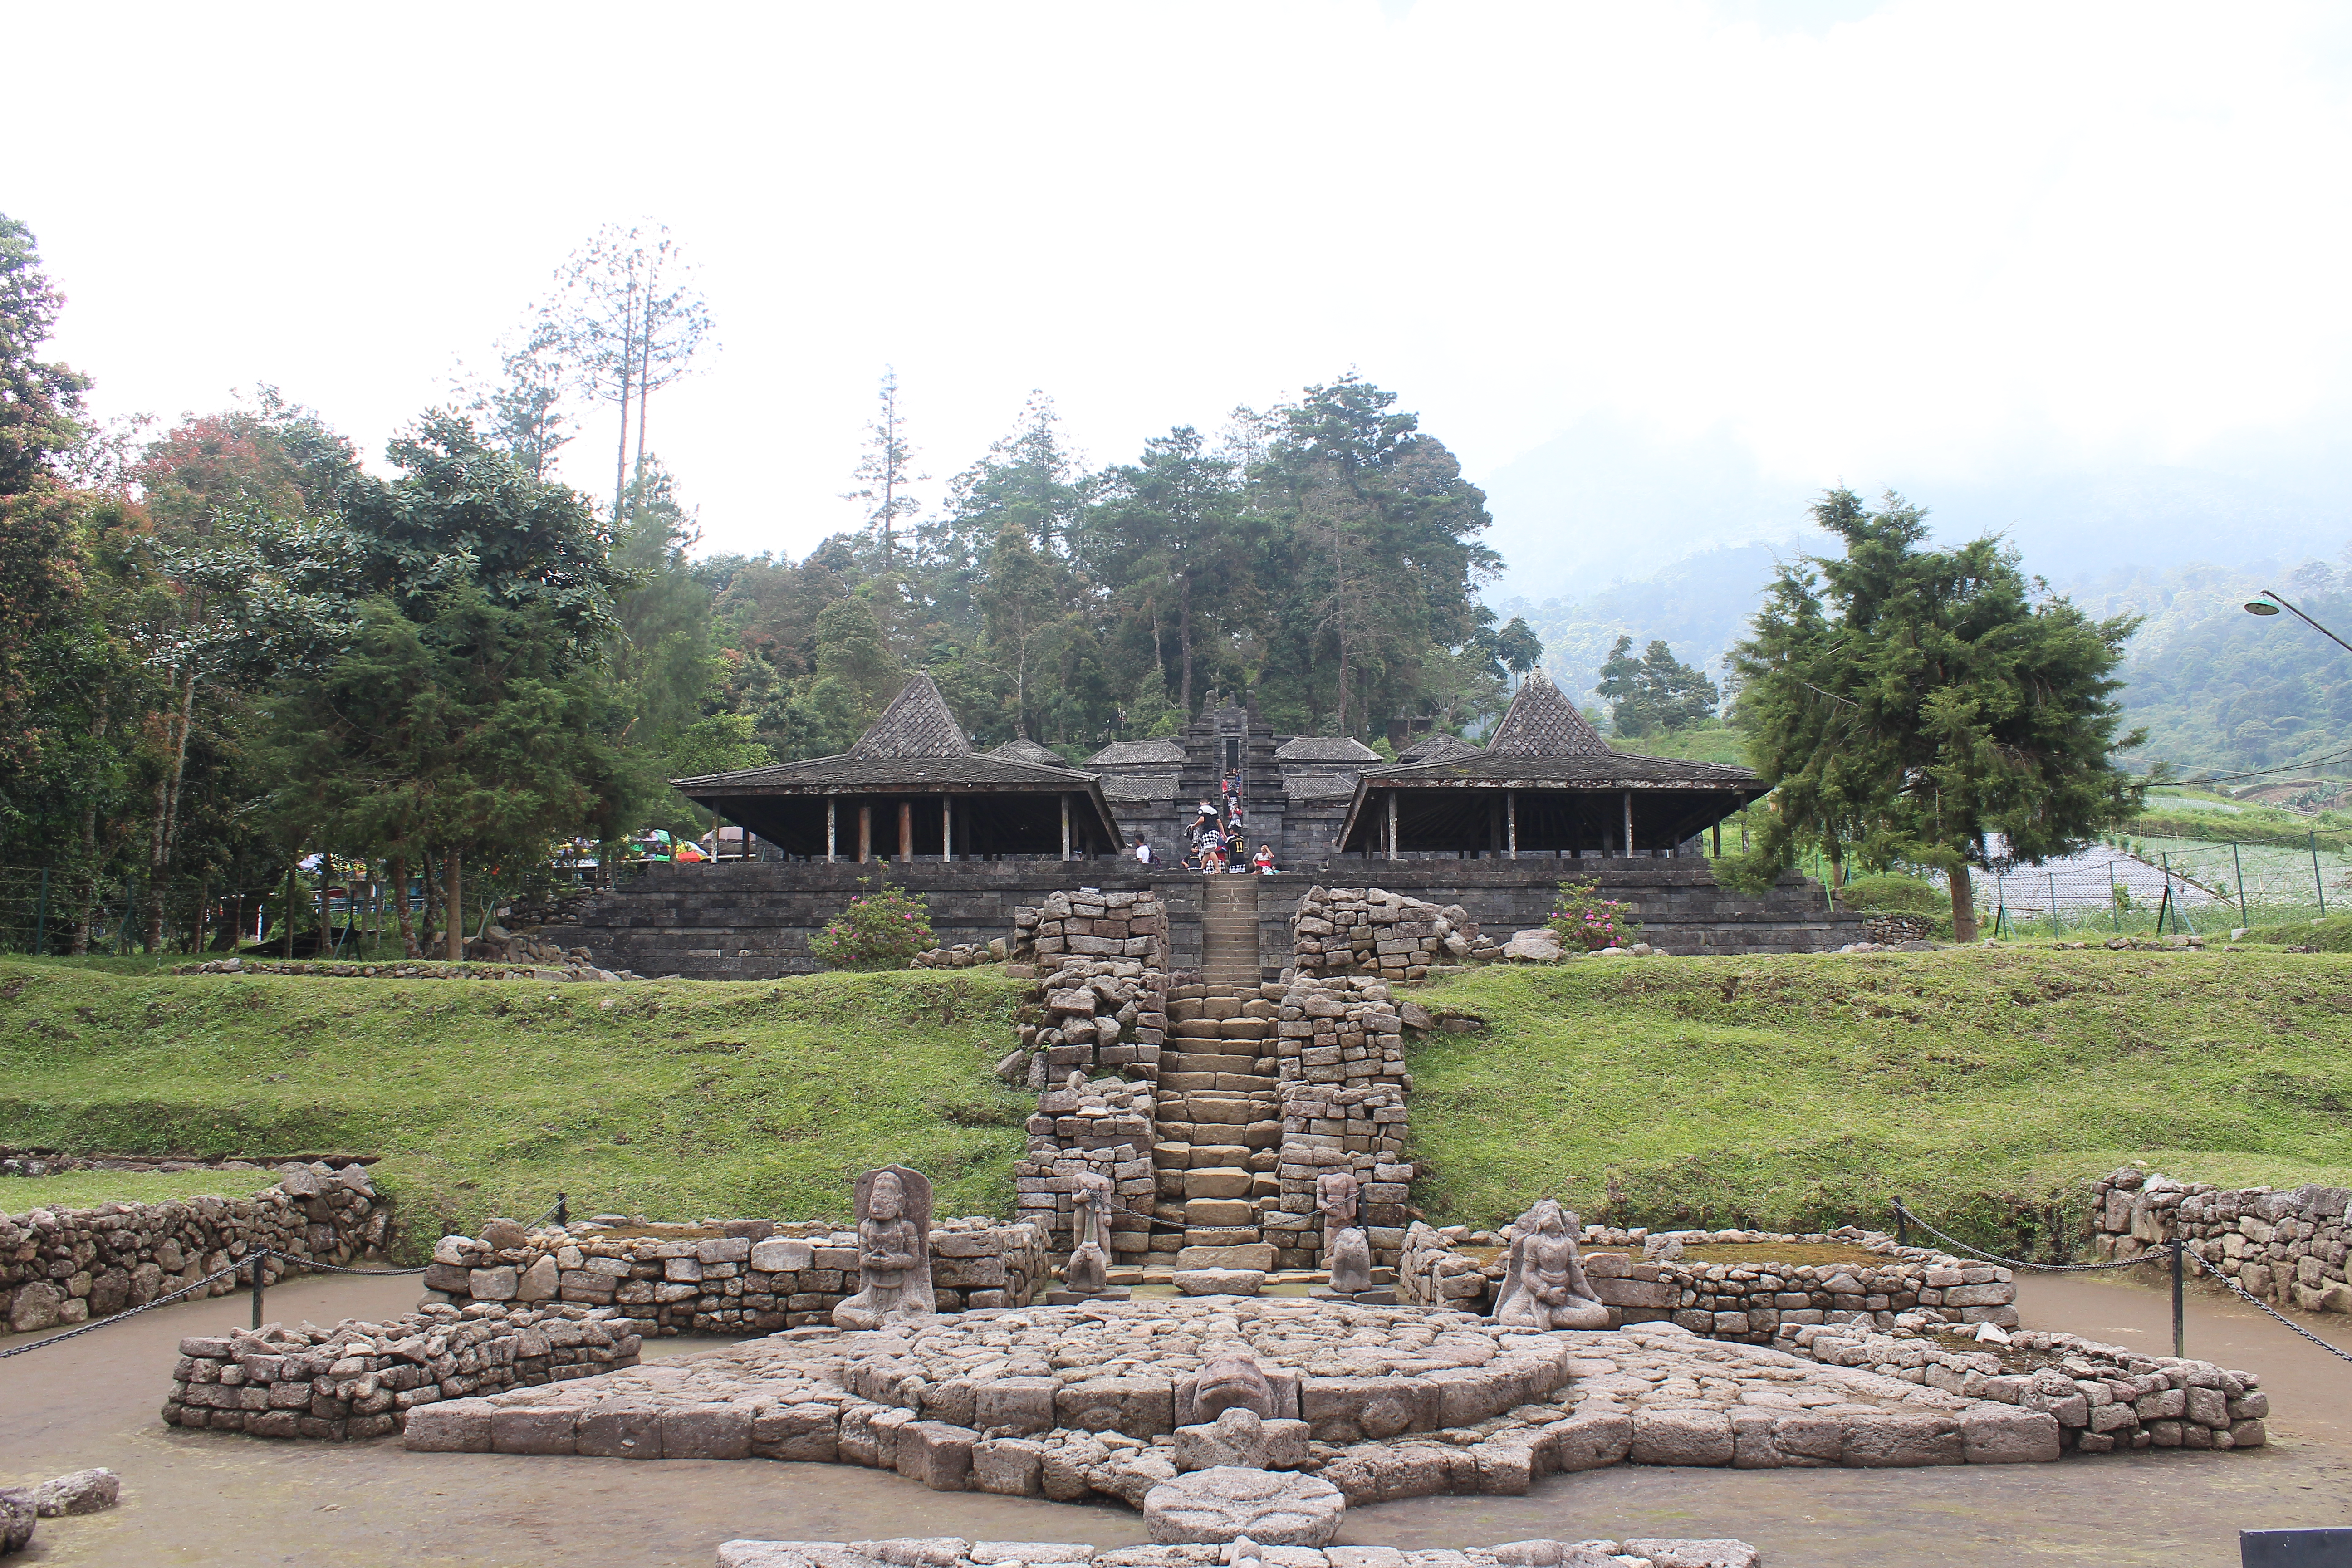 Multi-terraced temple built up the side of a mountain, with stone sculptures in the foreground, a staircase leading up the center, and thatch-roofed hut-shrines above, with tall trees on the mountain higher up